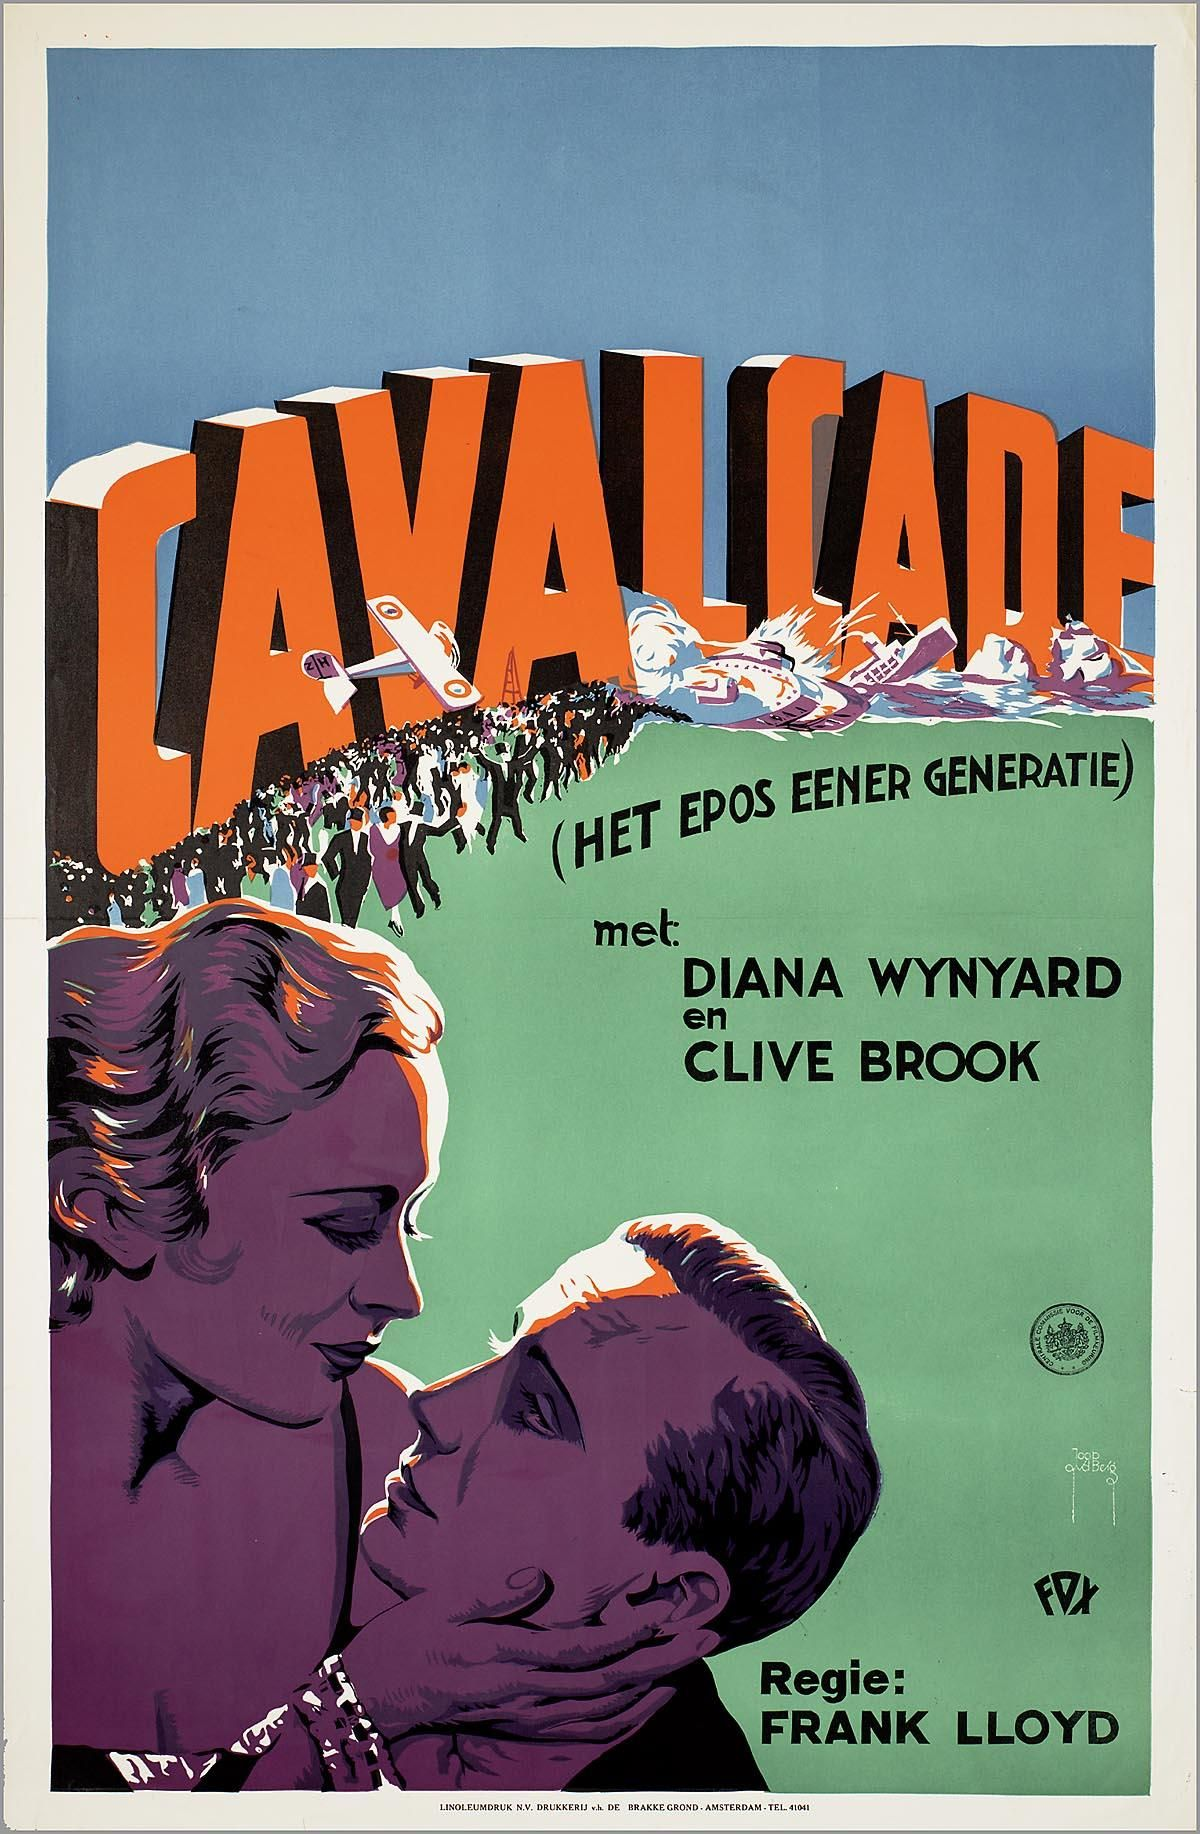 cavalcade academy award best picture imdb com cavalcade 1933 academy award best picture imdb com title tt0023876 promotion film music 1930s academy awards